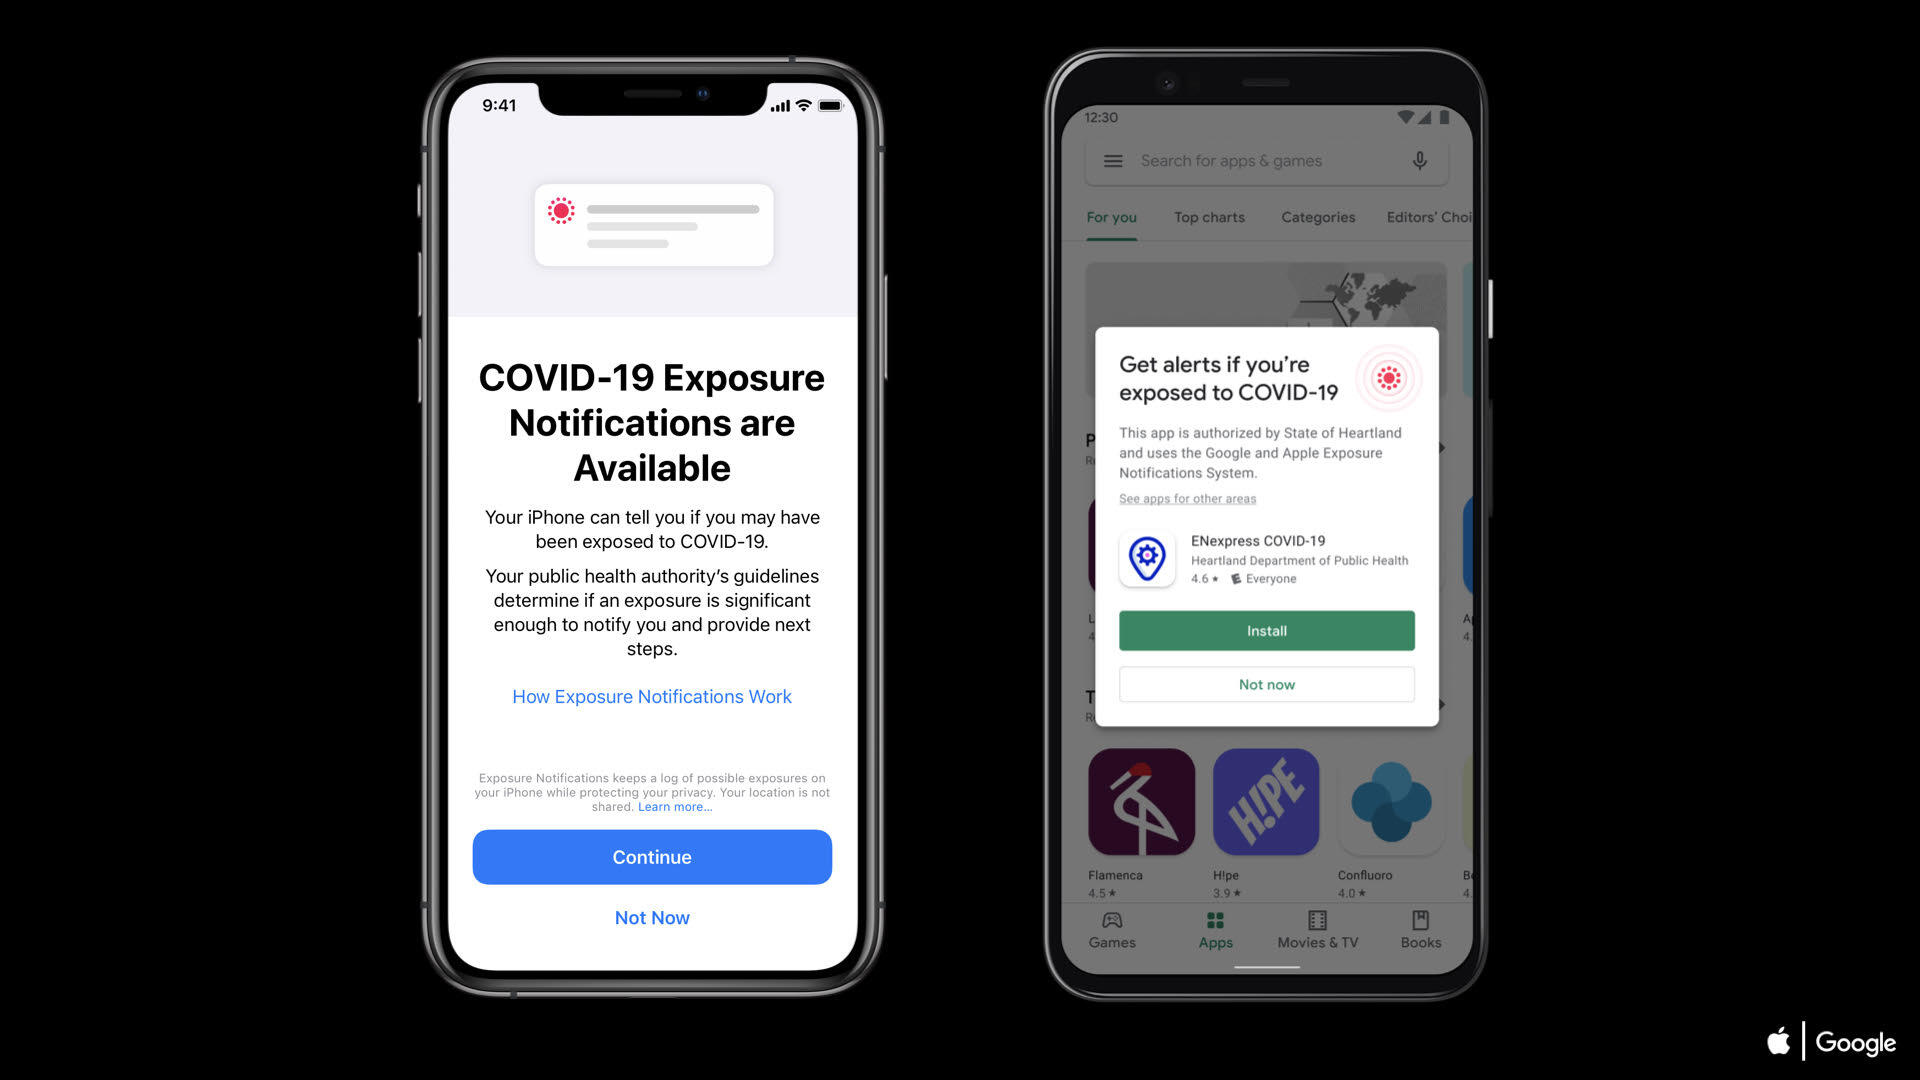 What Apple and Google's new exposure notification system will look like